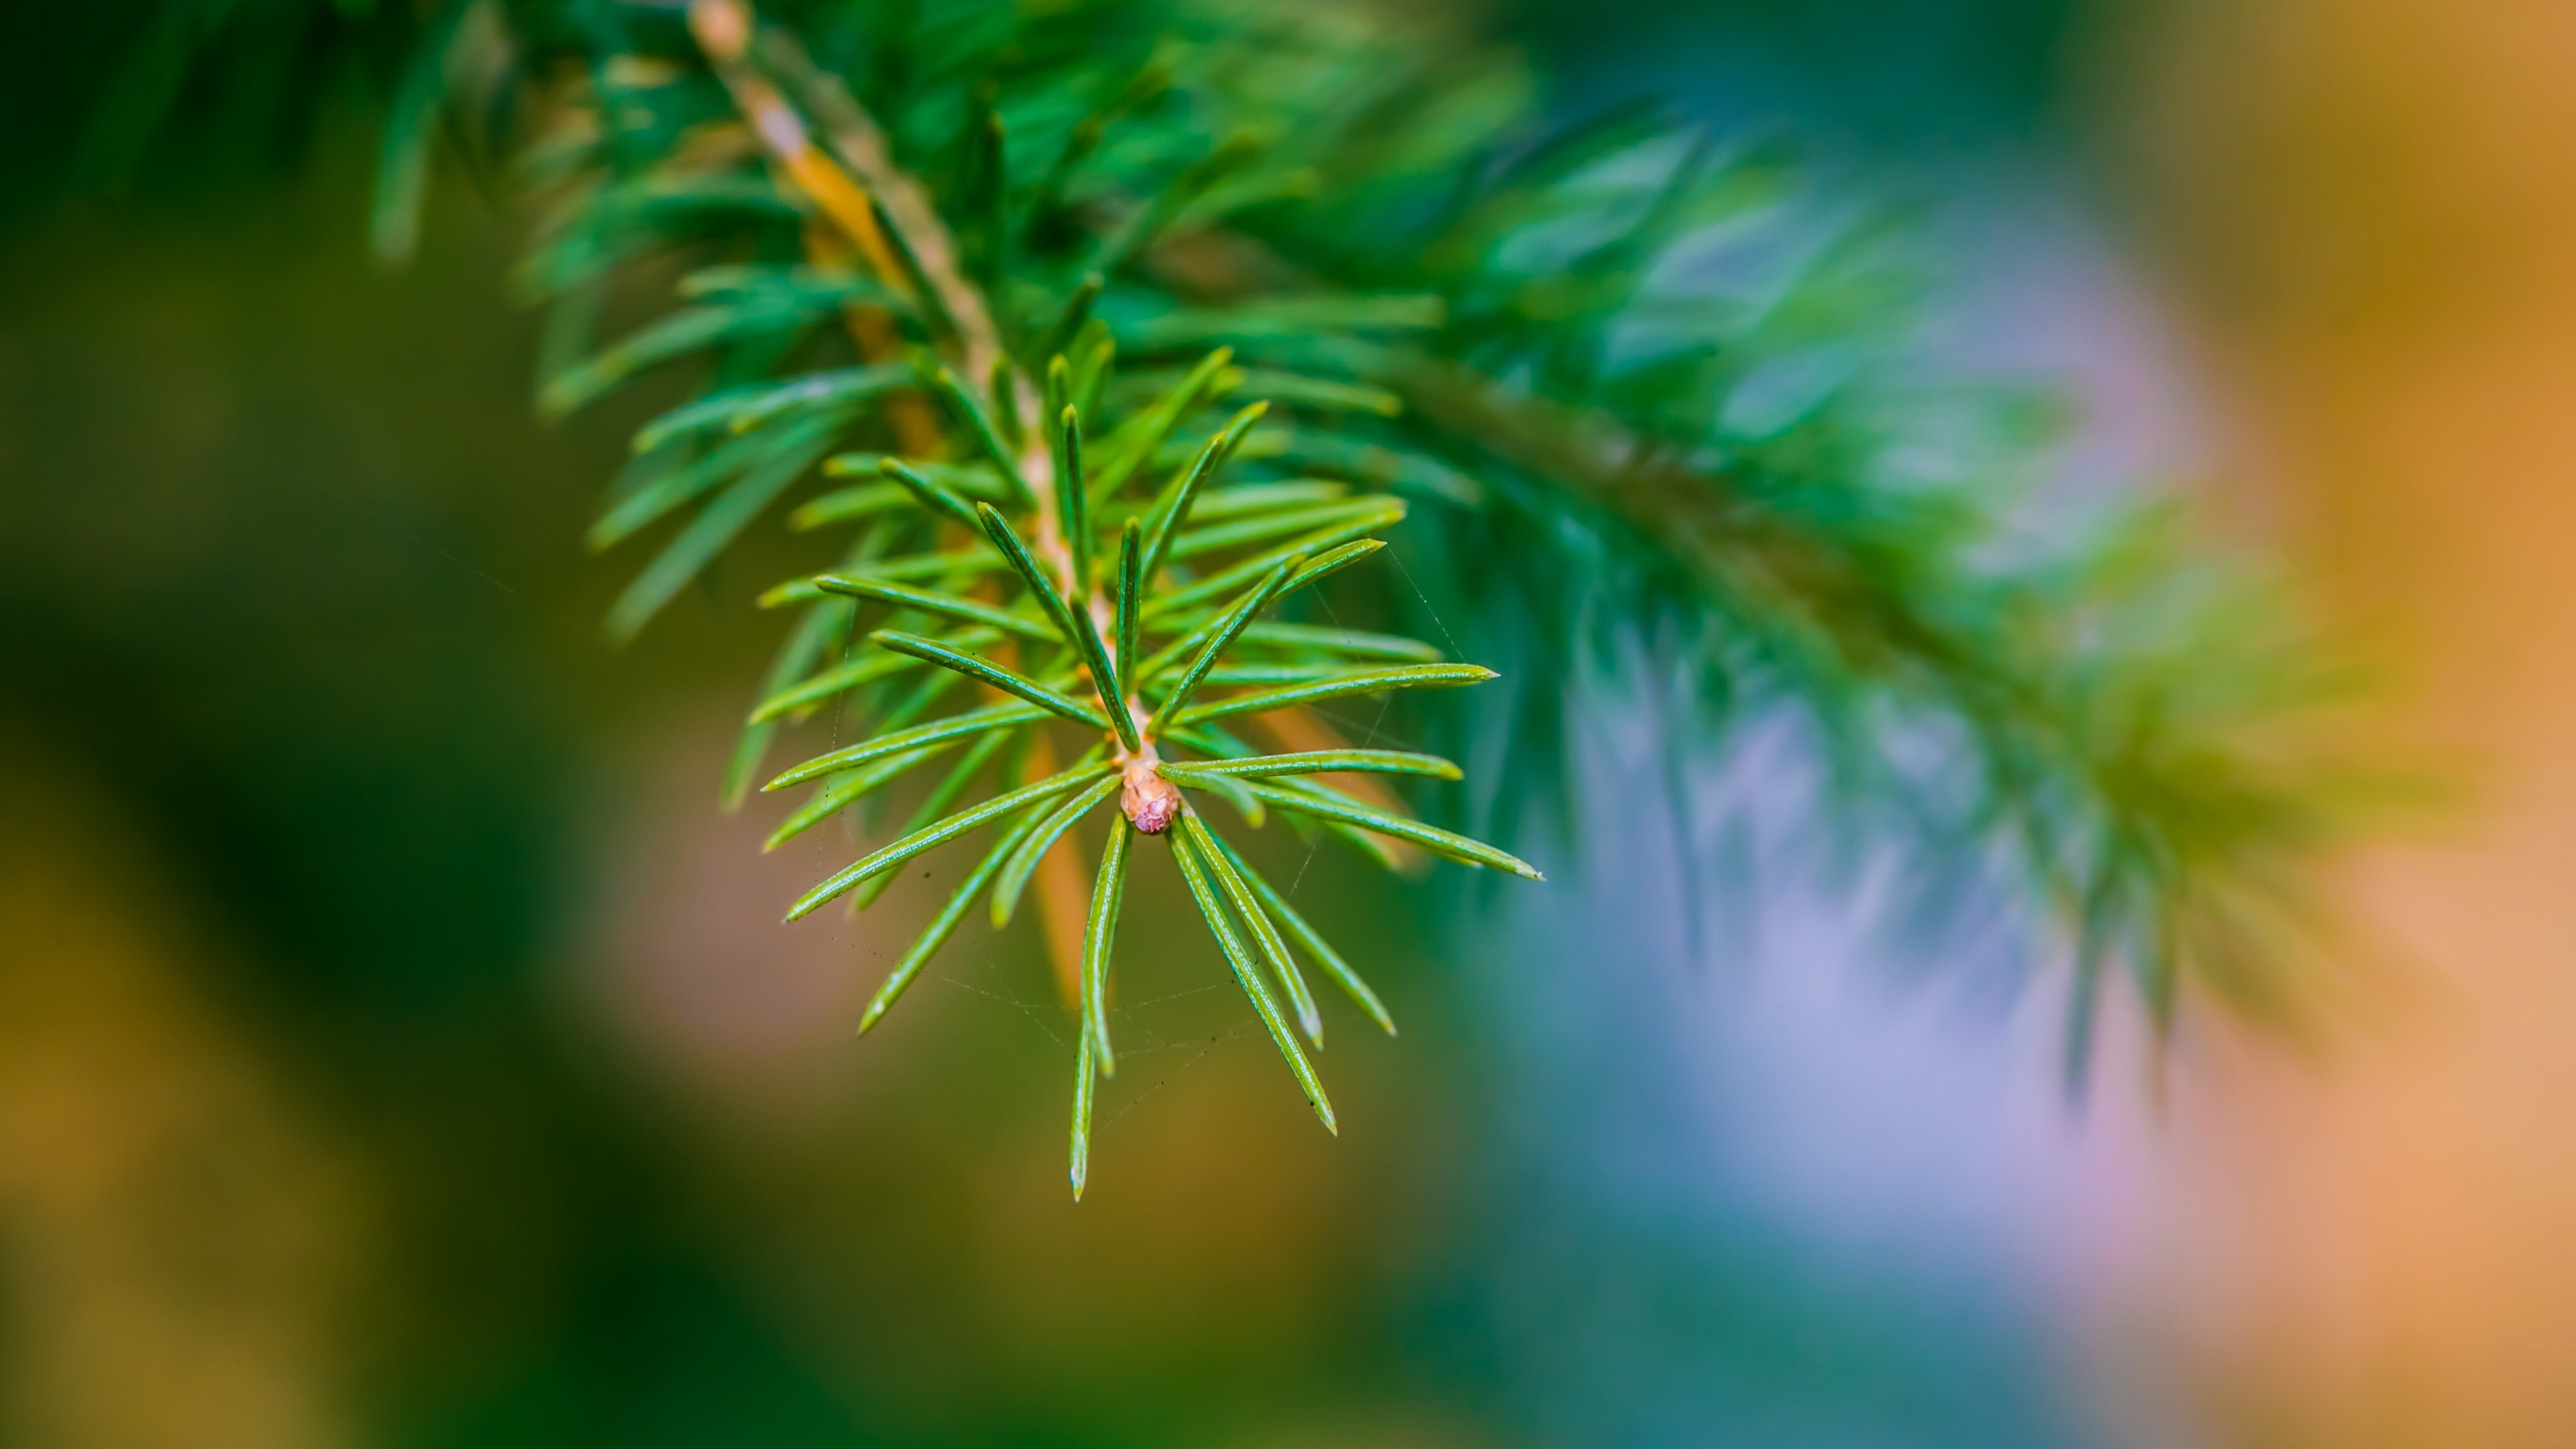 Fir Tree Branch Macro Wallpaper for Desktop 4K 3840x2160